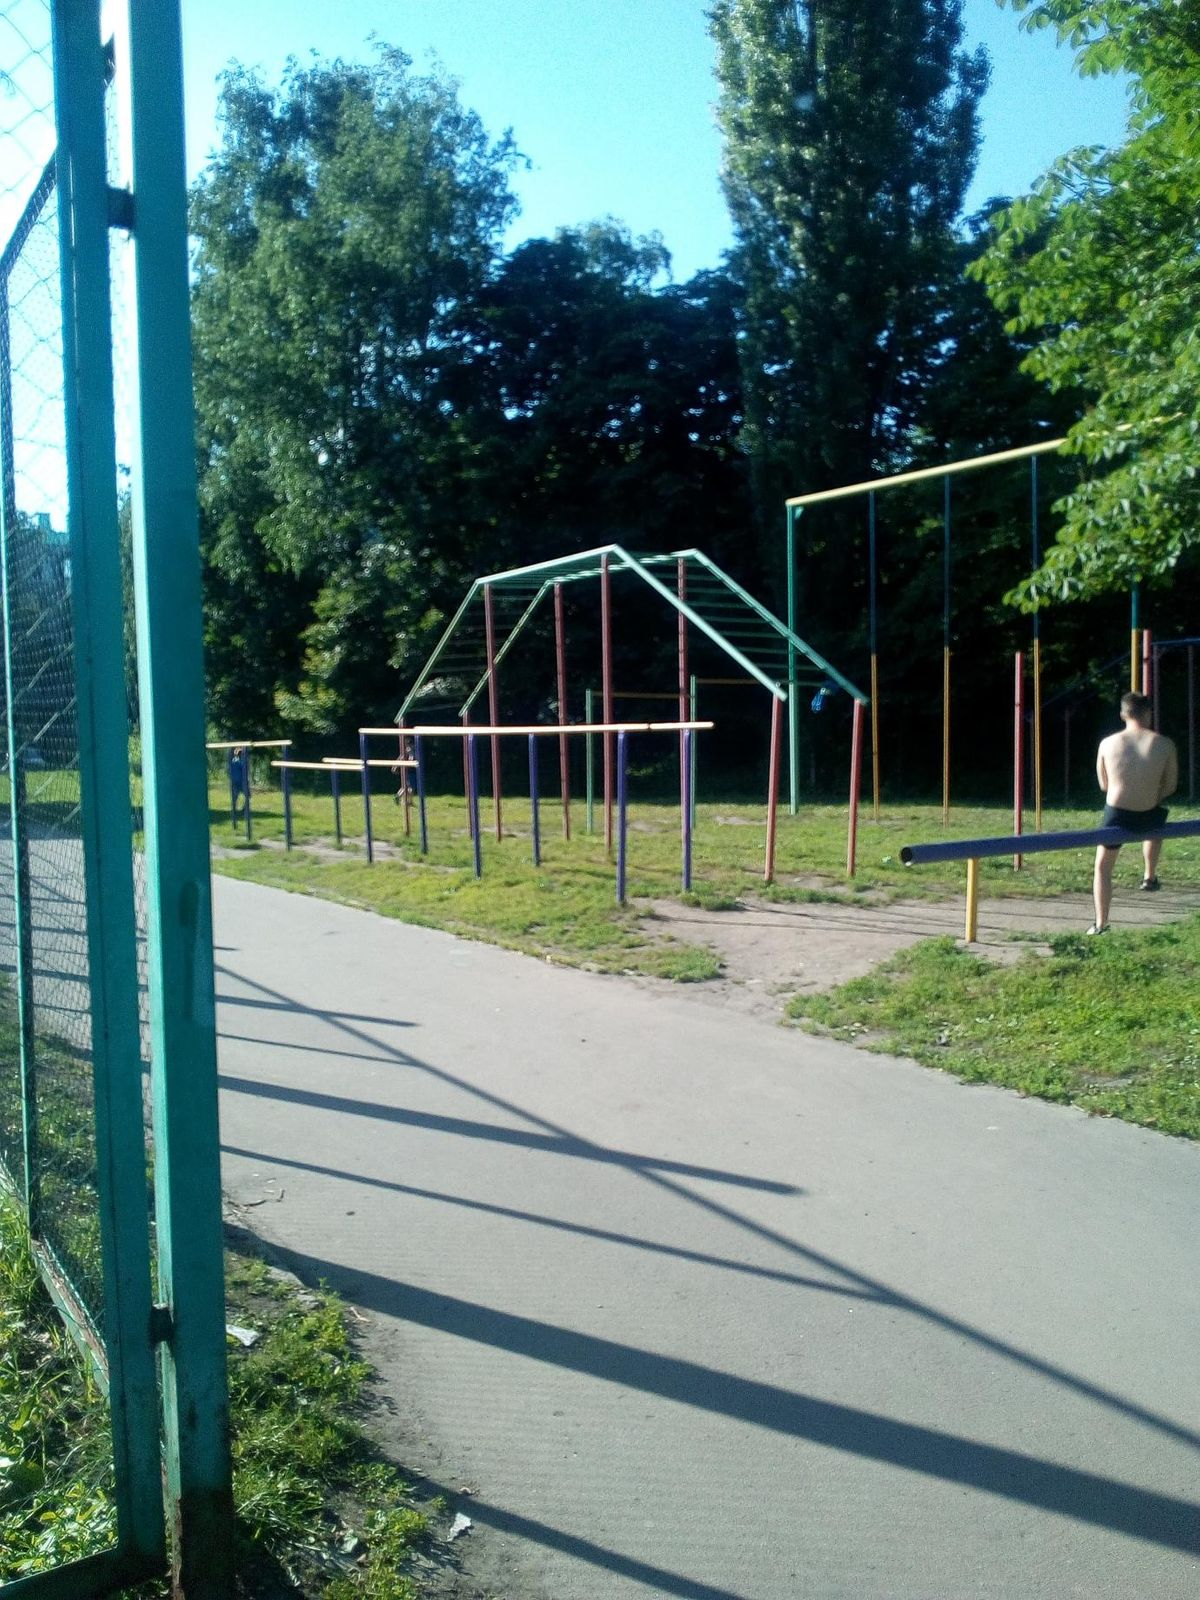 Kursk - Street Workout Park - Европа-1